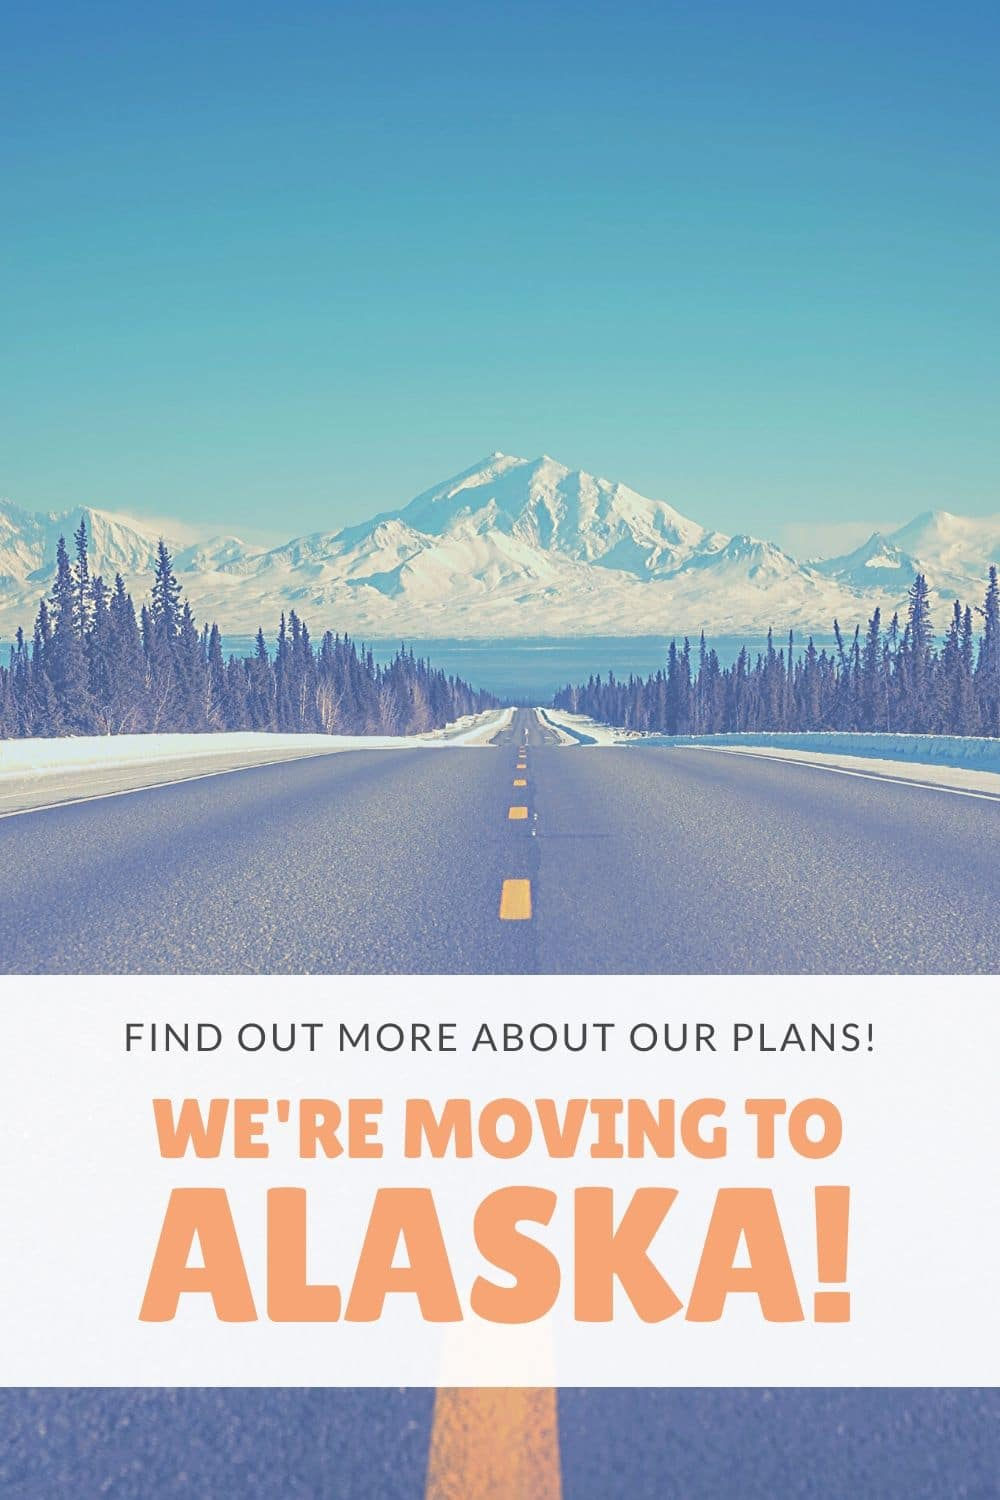 Alaskan lifestyle blogger, Cris Stone, shares how they're moving to Alaska from Texas! Check out their plans for a new life in Alaska, the Land of the Midnight Sun. Find out more!